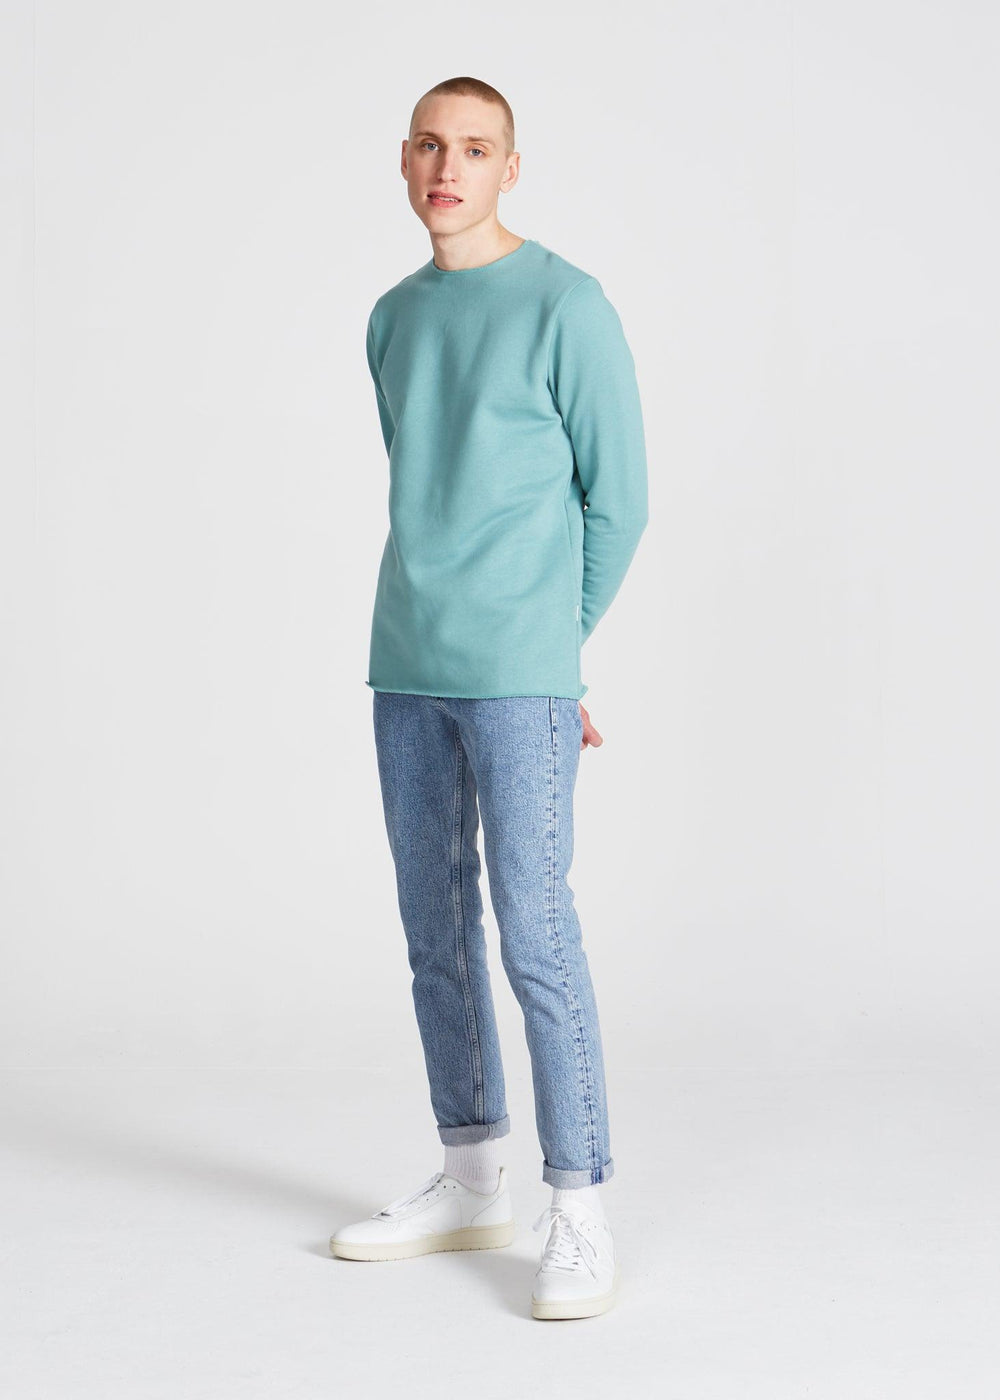 Givn BERLIN Manu Sweater Mint